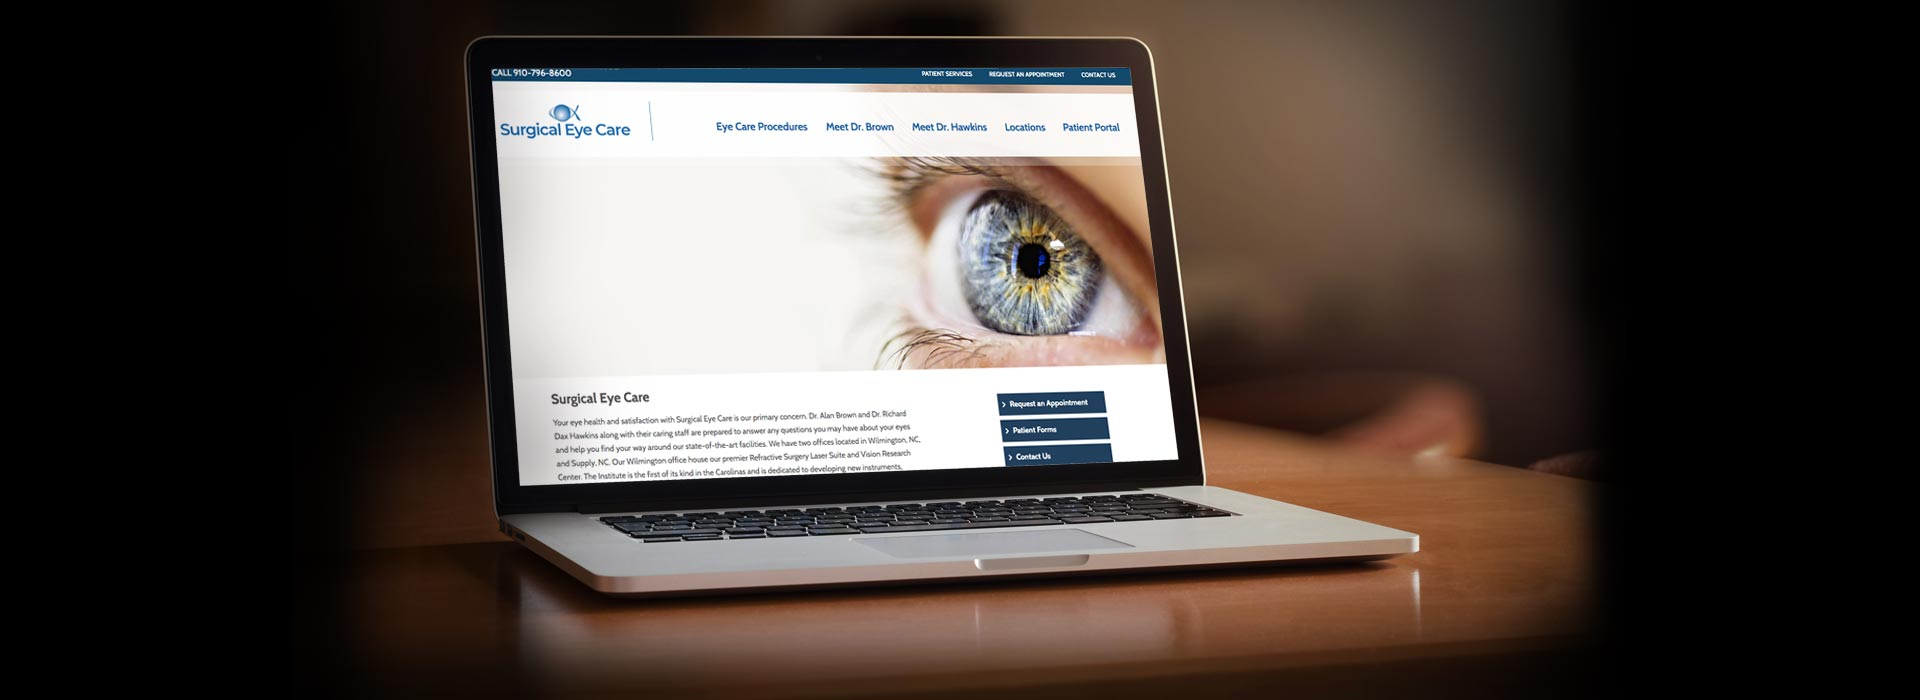 Surgical Eye Care - ProjectBox Media - ProjectBox Media